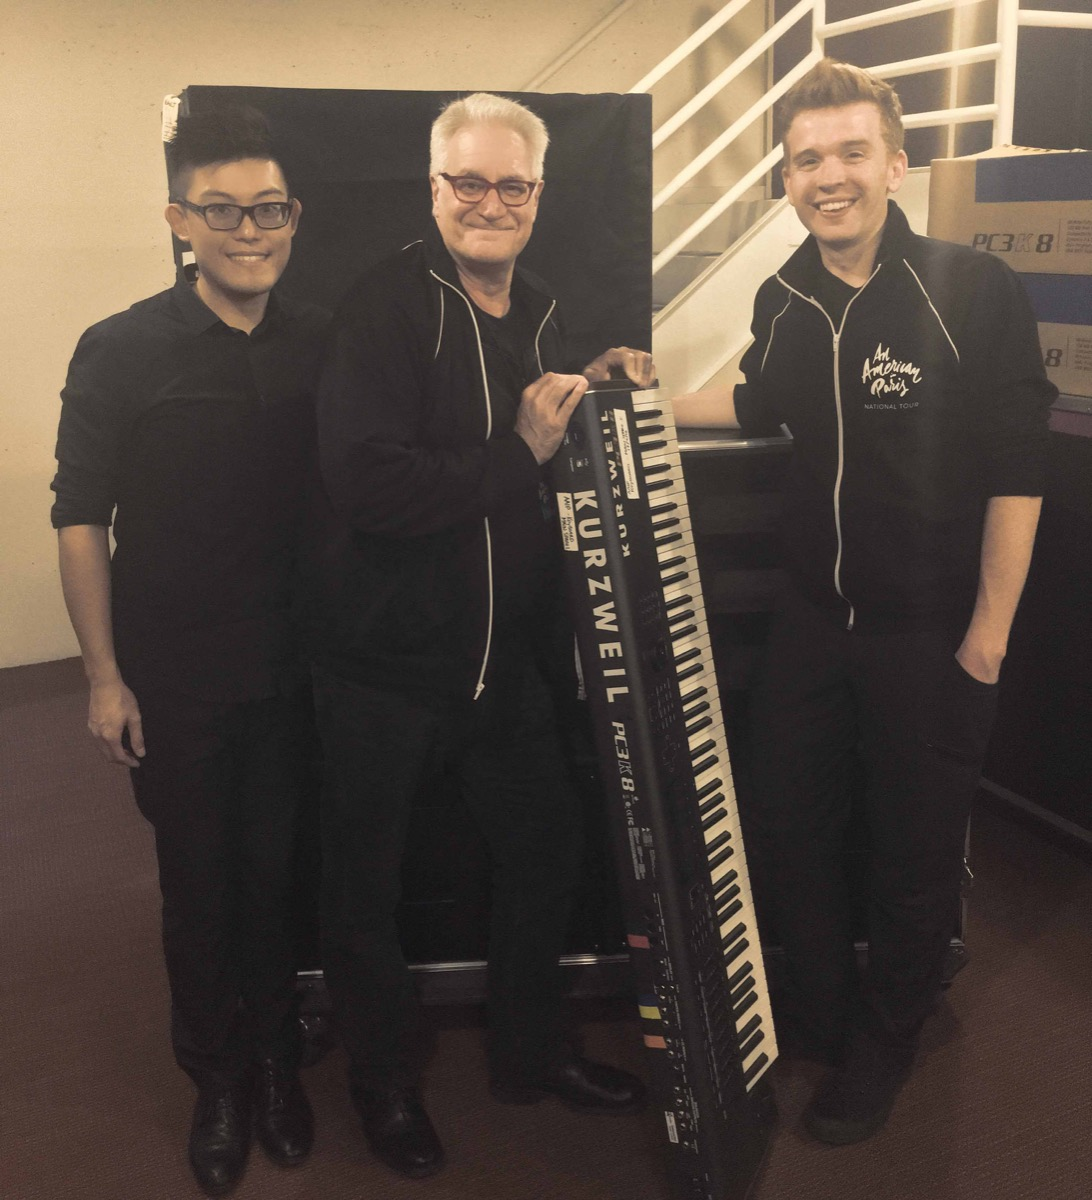 (L-R) Ray Wong, Henry Palkes and Brad Gardner with the Kurzweil PC3K8 Keyboard